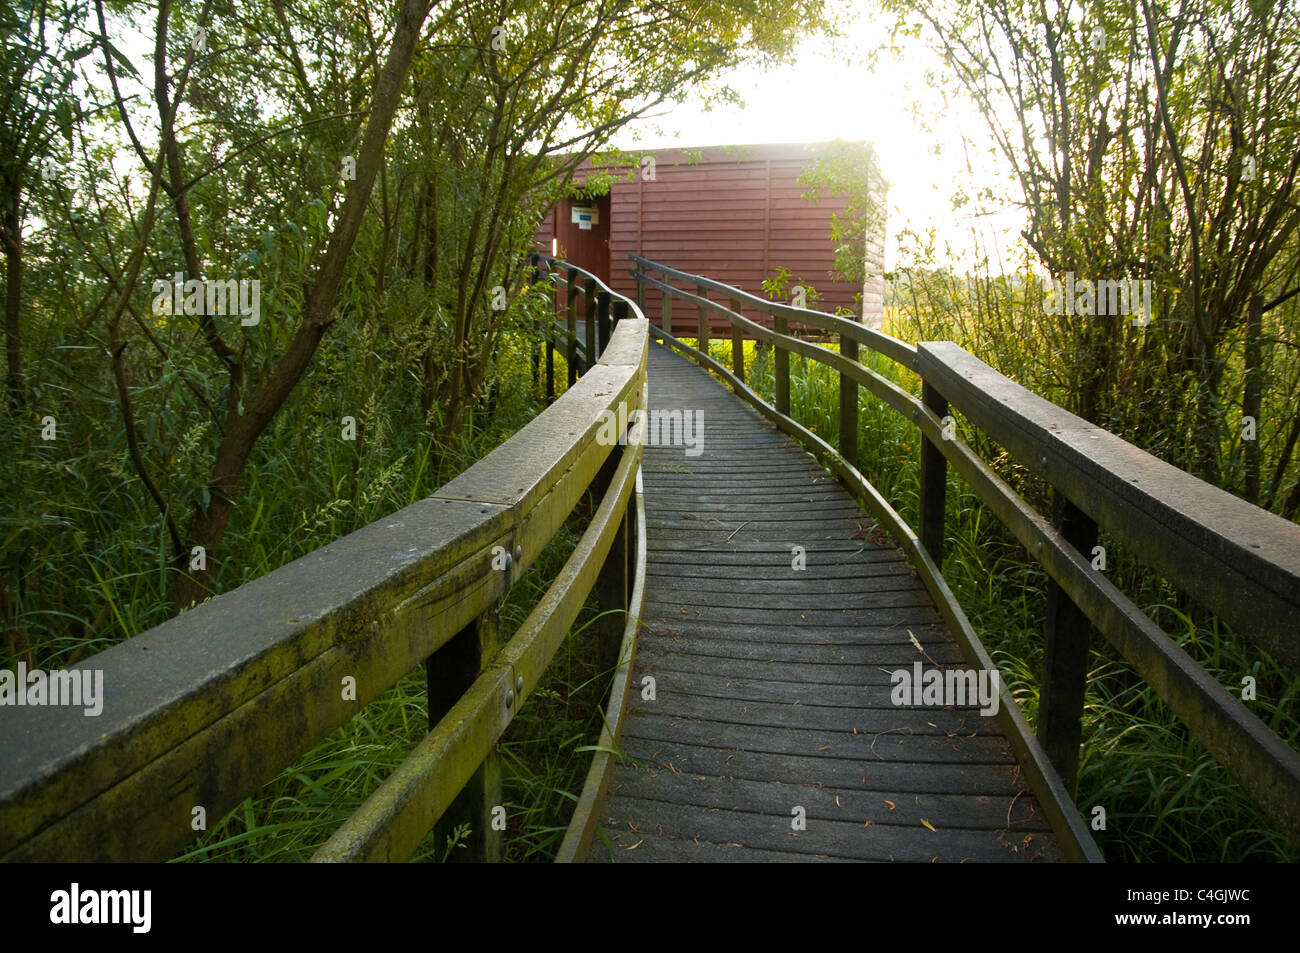 Walkway over Osier beds leading to a bird hide at a wildlife nature reserve in Gloucestershire, UK. - Stock Image